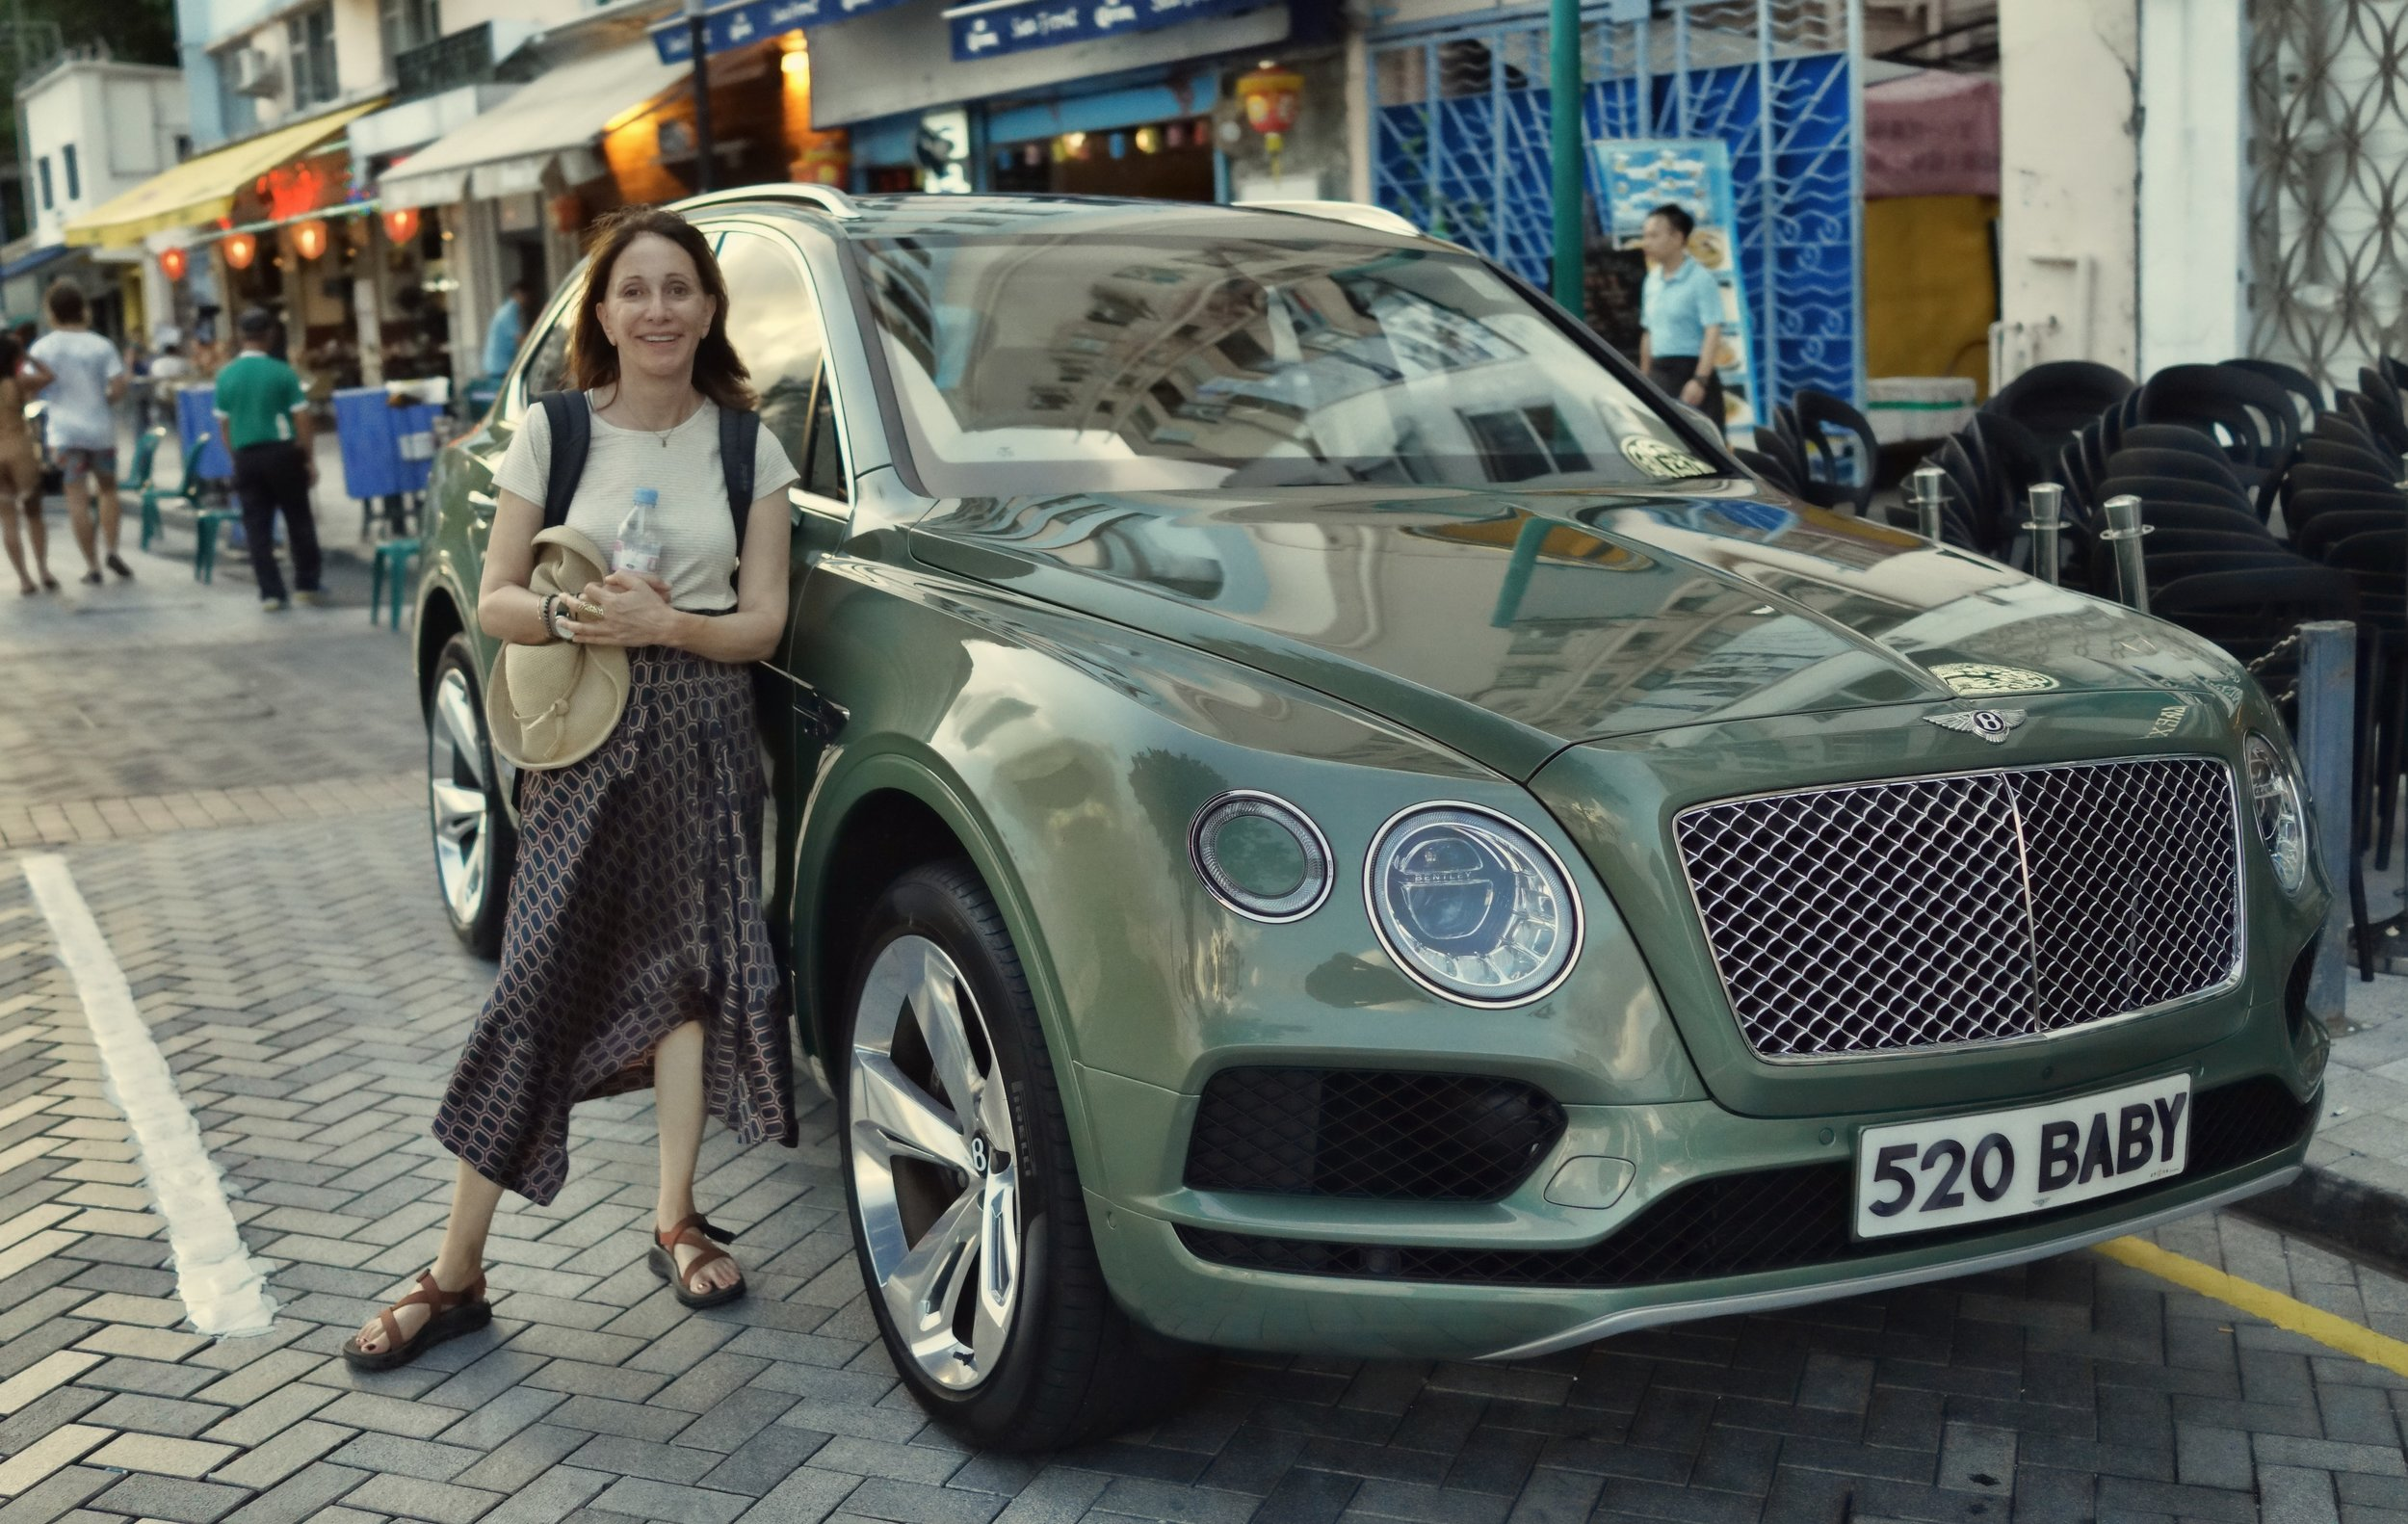 ... and no, I do not do car tours in this gorgeous Bentley SUV! -